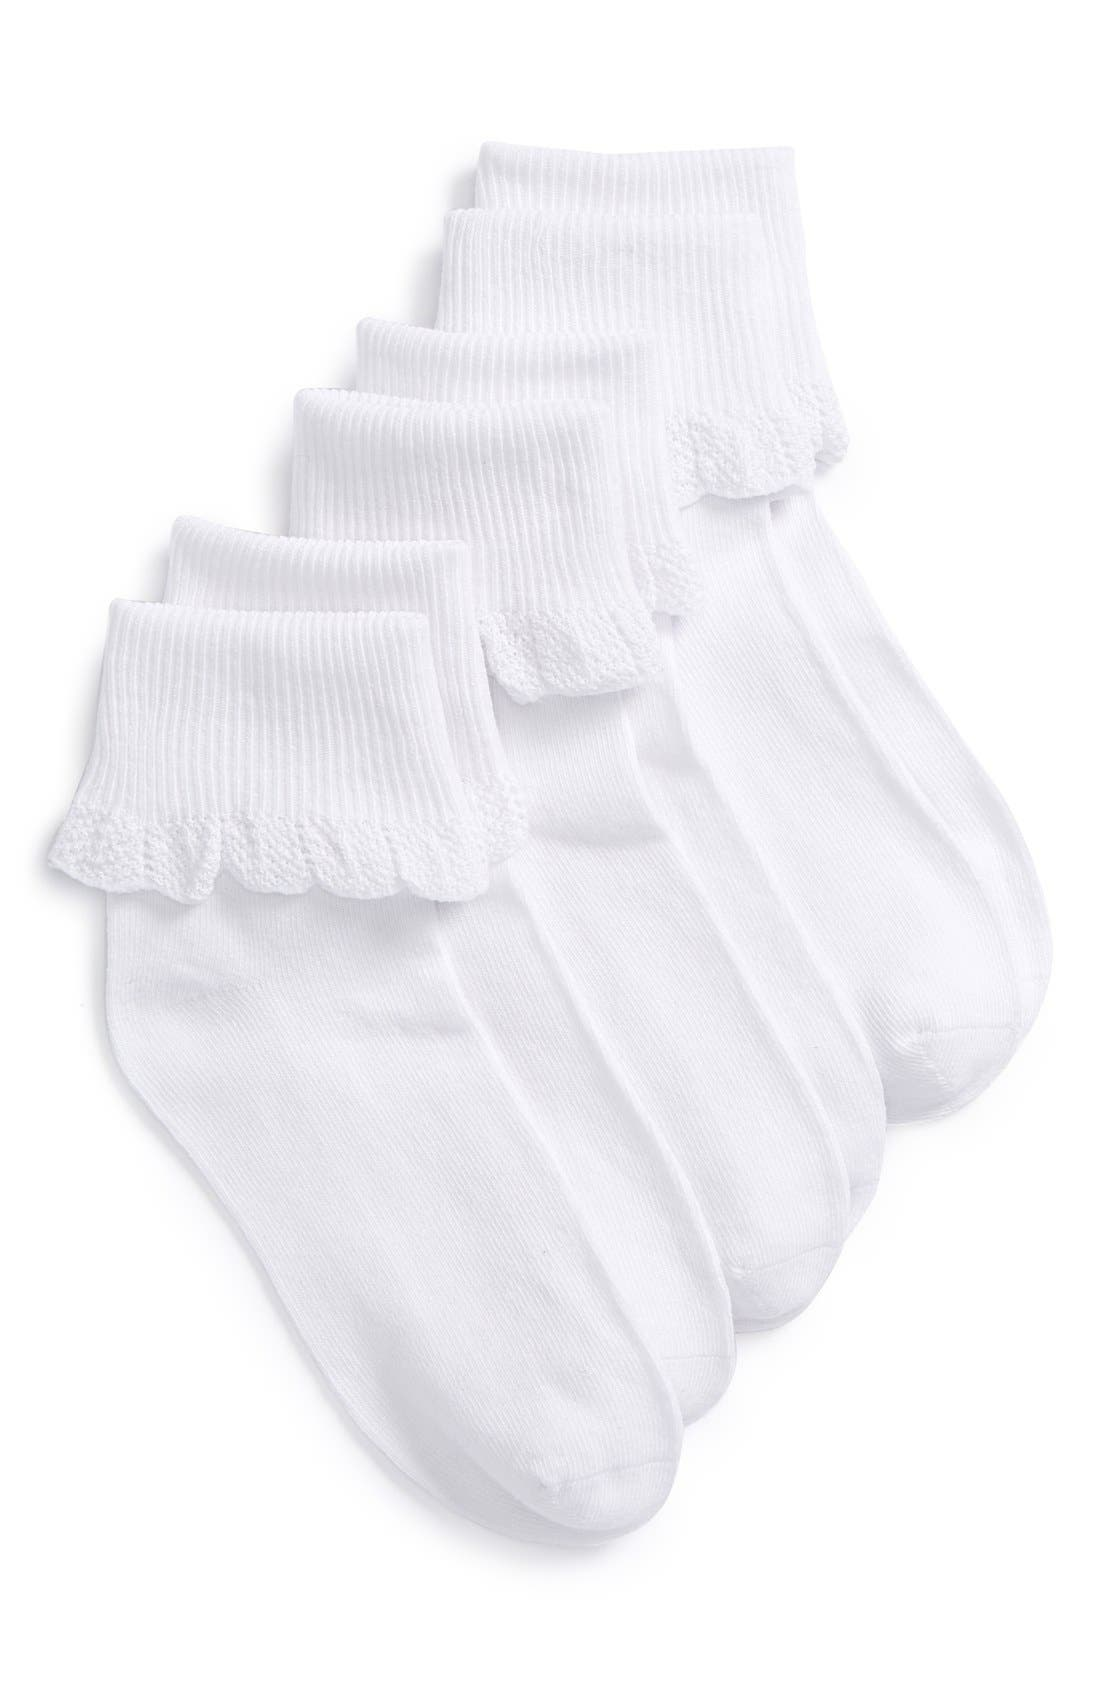 3-Pack Socks,                             Main thumbnail 1, color,                             WHITE